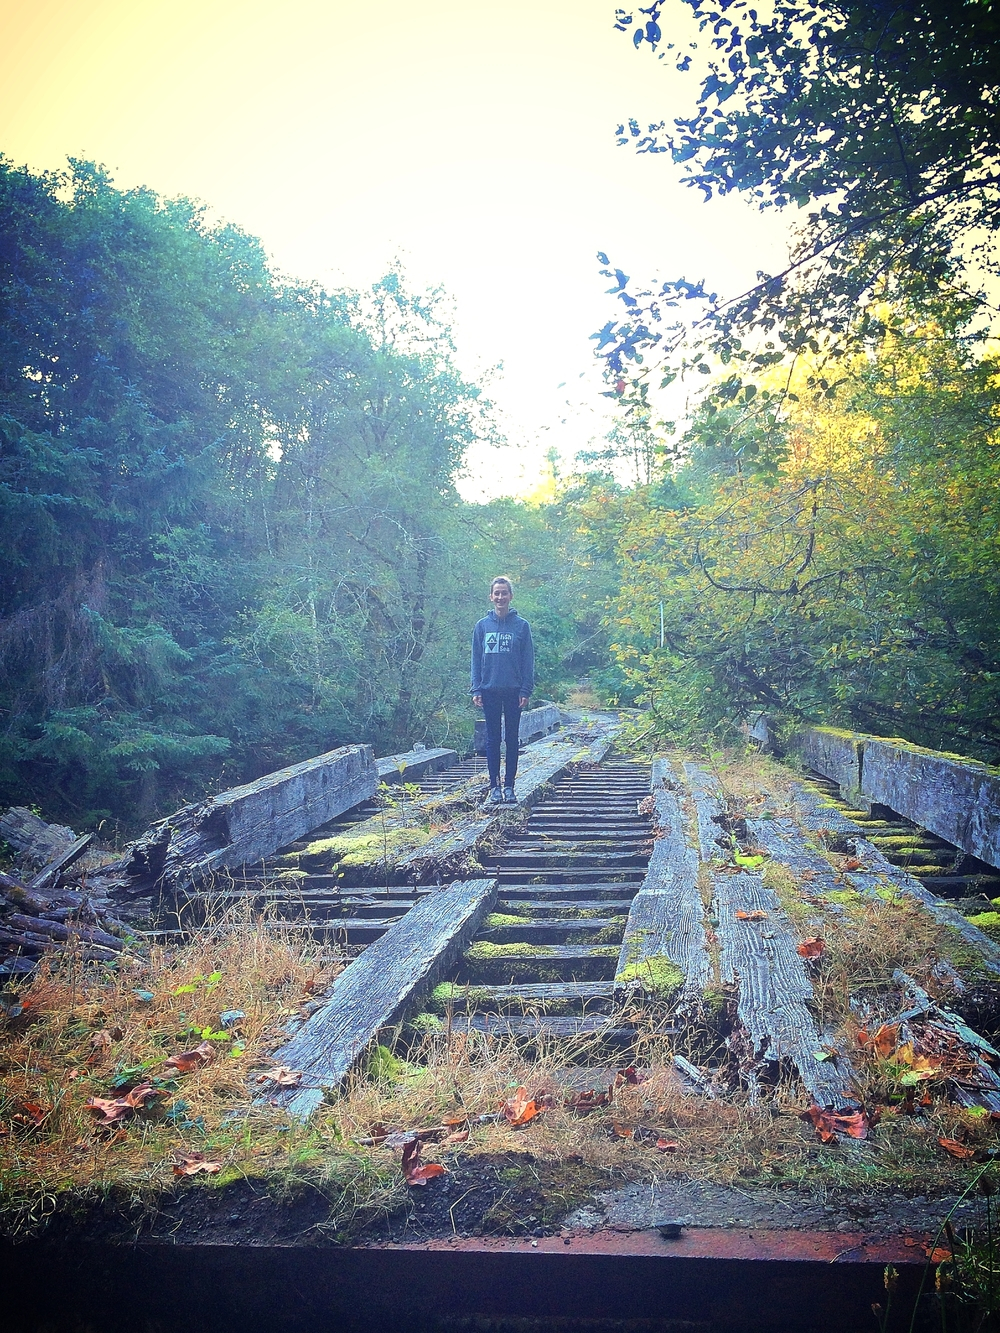 A Rotting Bridge on the Hunting Expedition